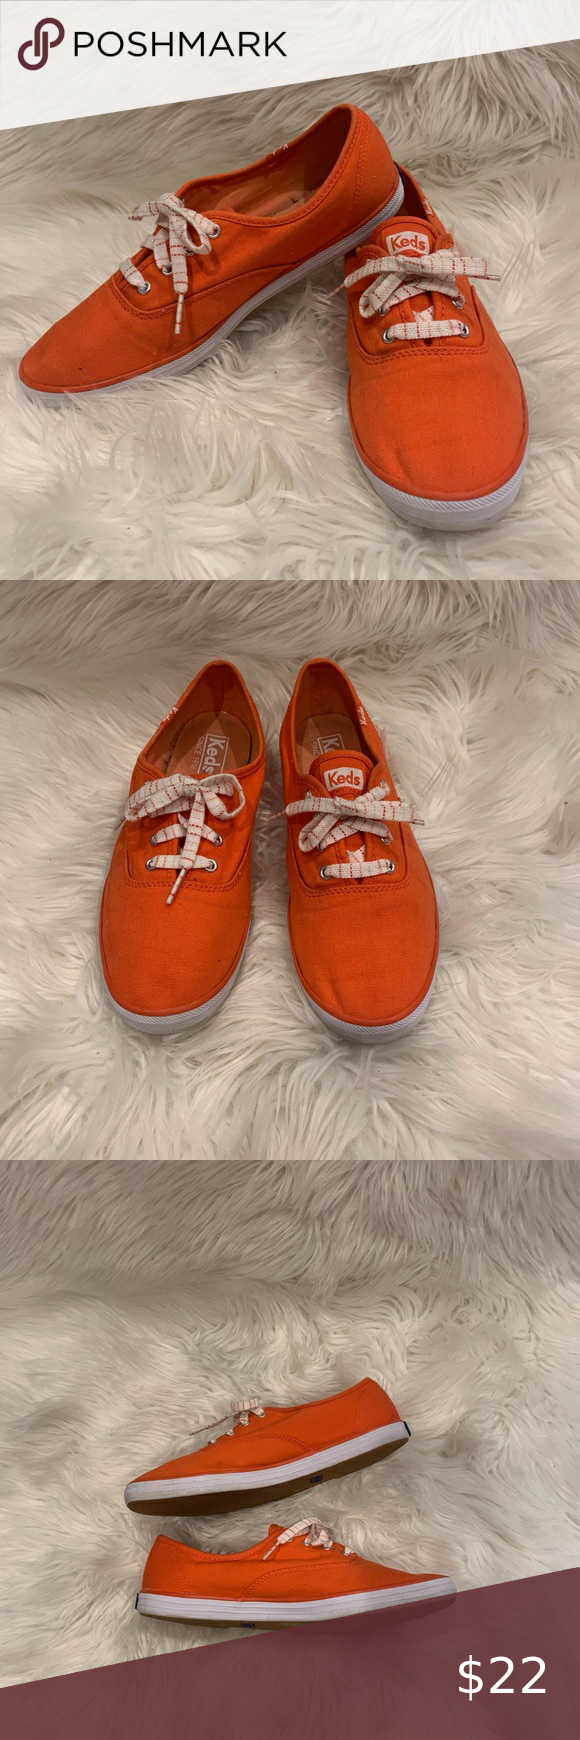 Keds Orange Canvas Sneakers Lace Up